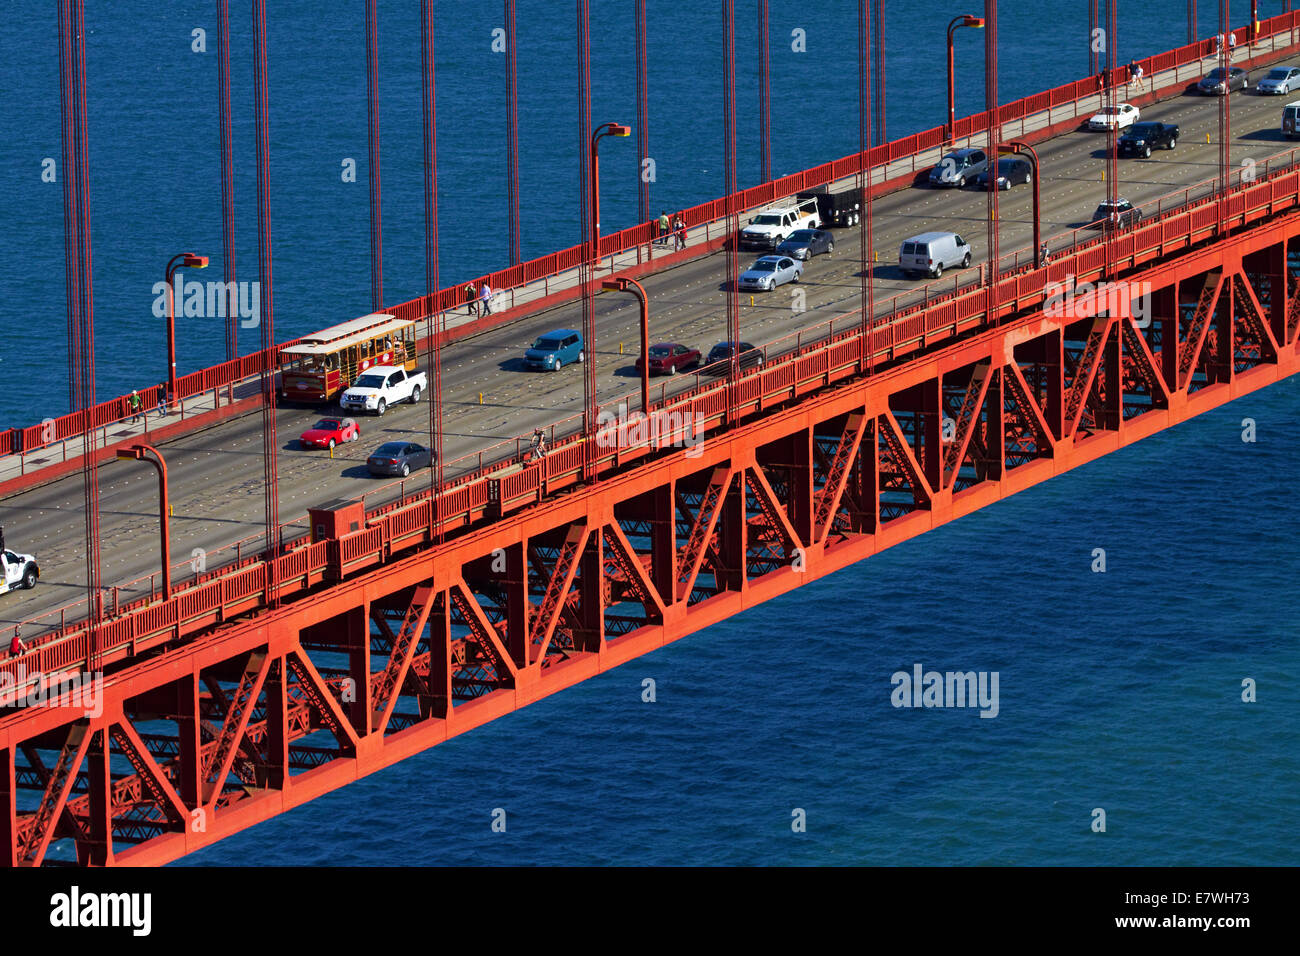 Traffic on Golden Gate Bridge, San Francisco Bay, San Francisco, California, USA Stock Photo